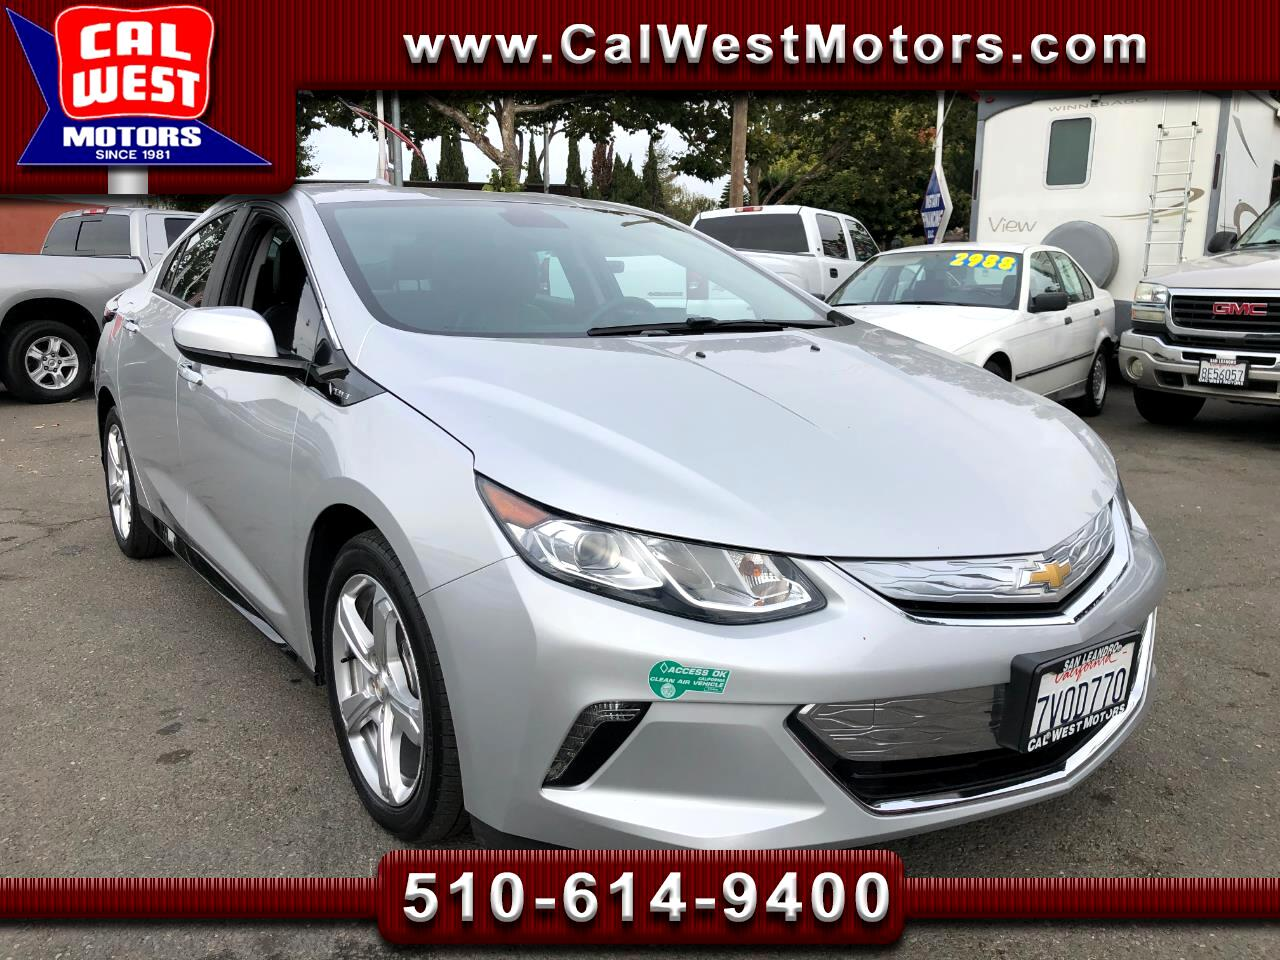 2017 Chevrolet Volt Voltec Sdn Leather BUCam Blu2th 1Owner GMWarranty